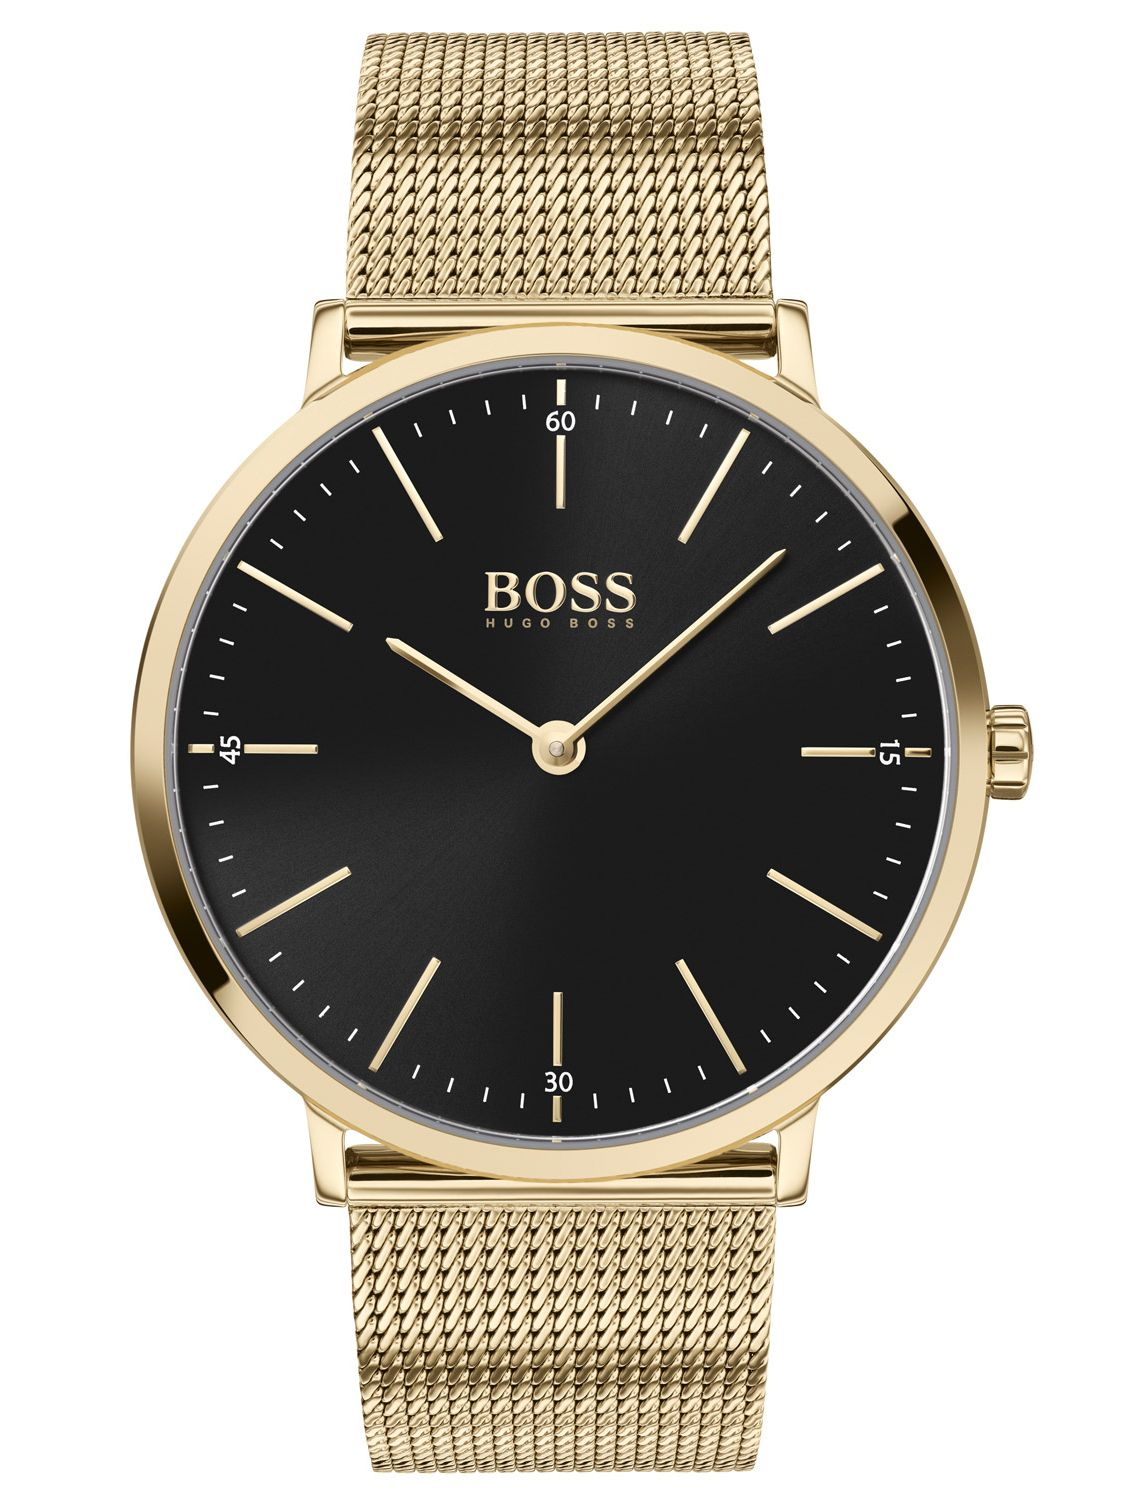 HUGO BOSS Analog Watch Quartz Man's with Stainless Steel Strap 1513735